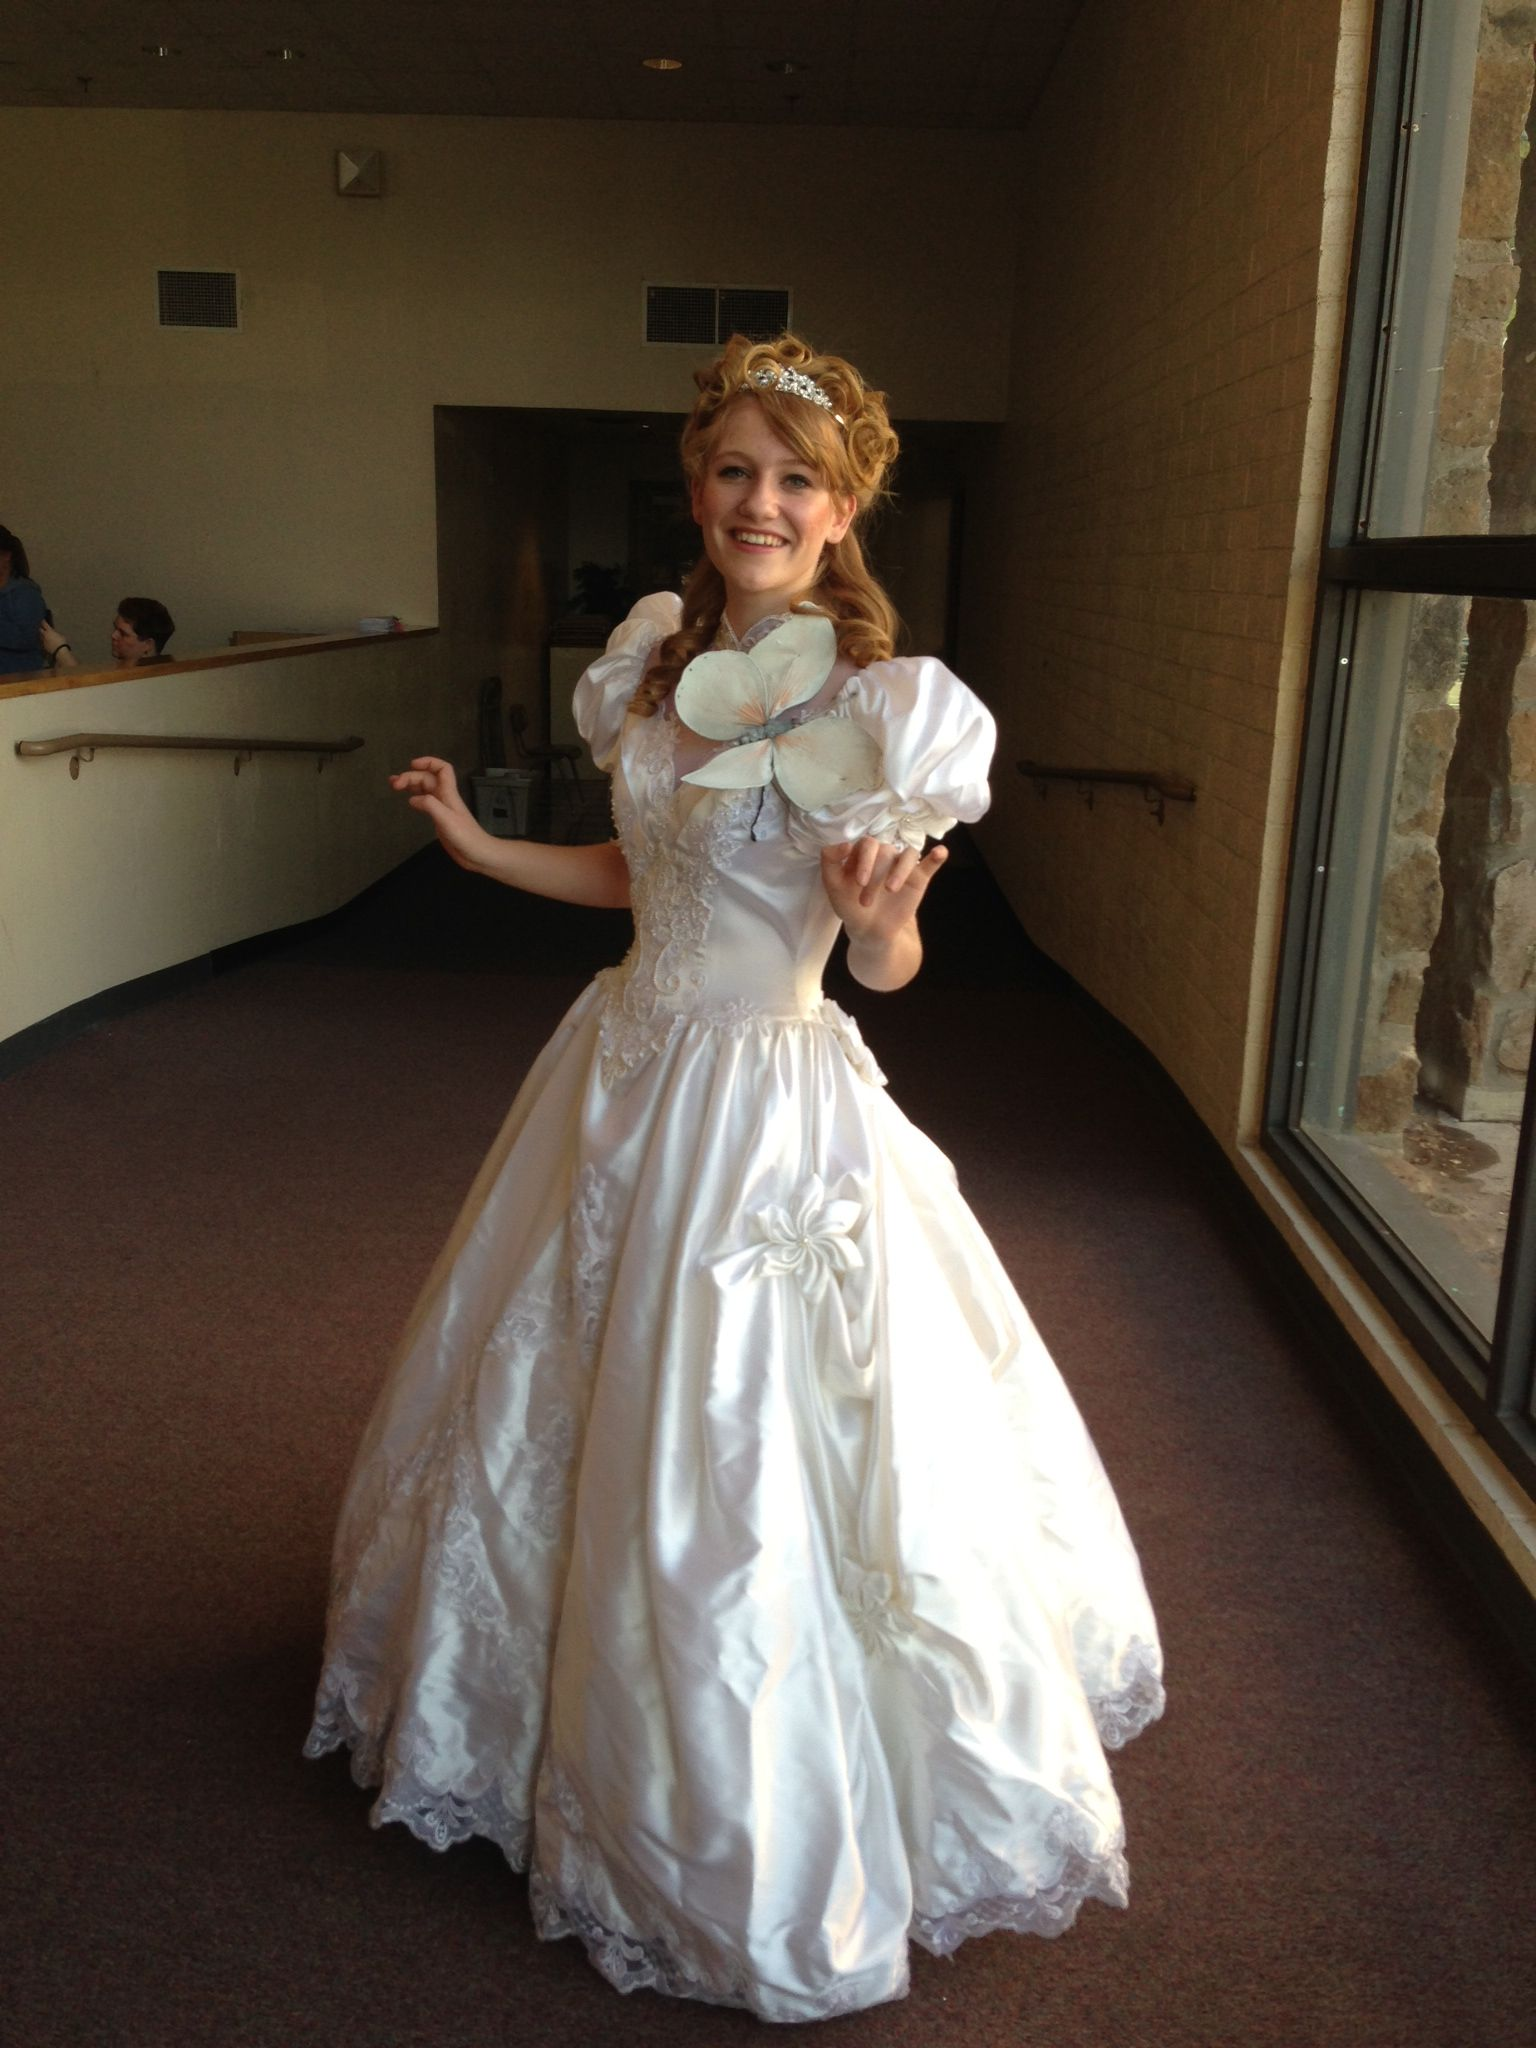 DIY Giselle From Enchanted Costume Old Wedding Dress From Goodwill 5 Cospl